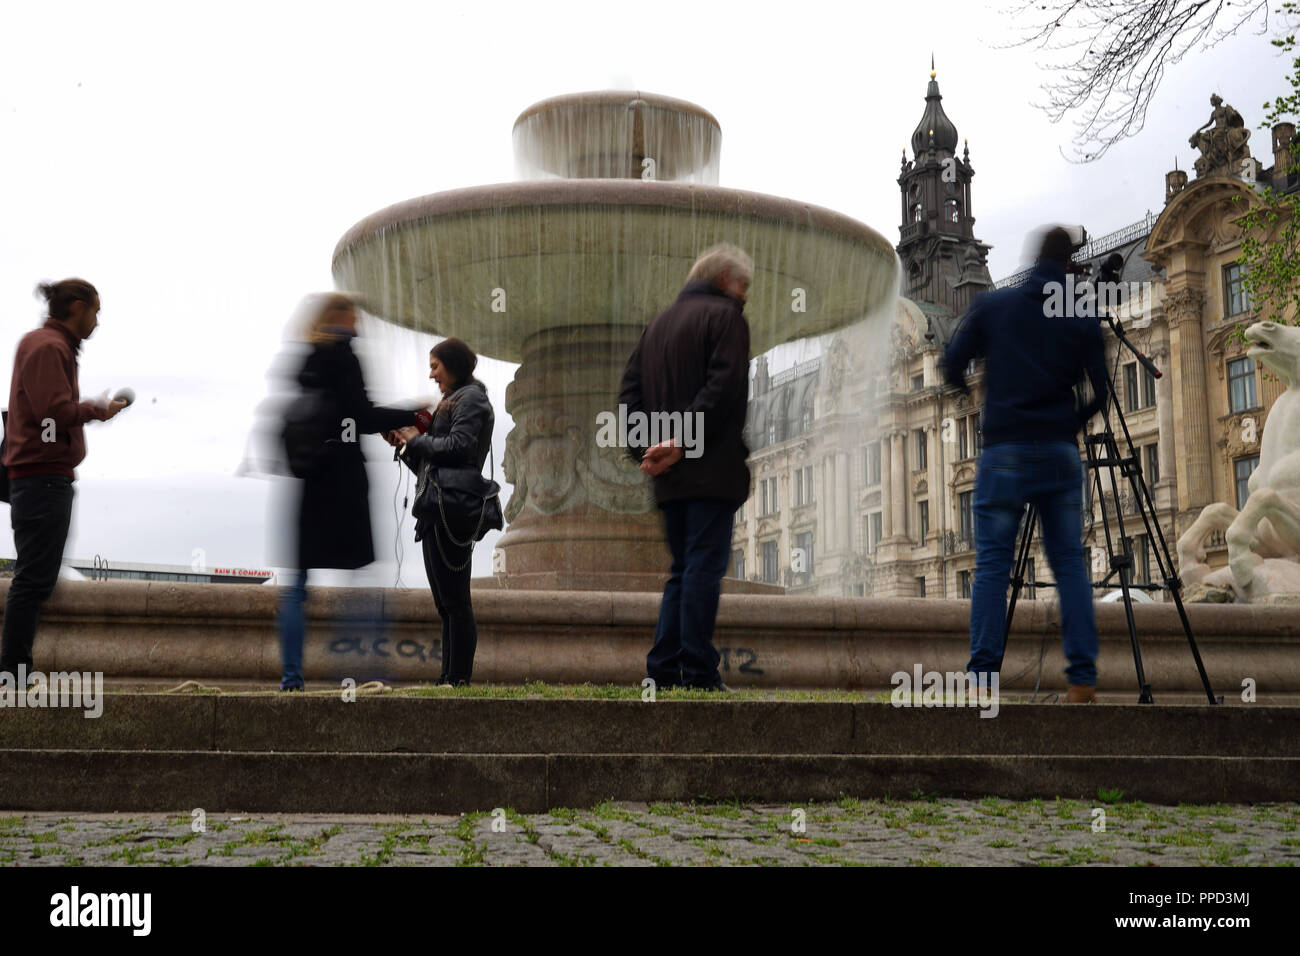 Opening of the Munich fountain season 2016: the picture shows the Wittelsbach Fountain, erected in 1895 by Adolf von Hildebrand at Lenbachplatz that was put into operation after the winter break. - Stock Image